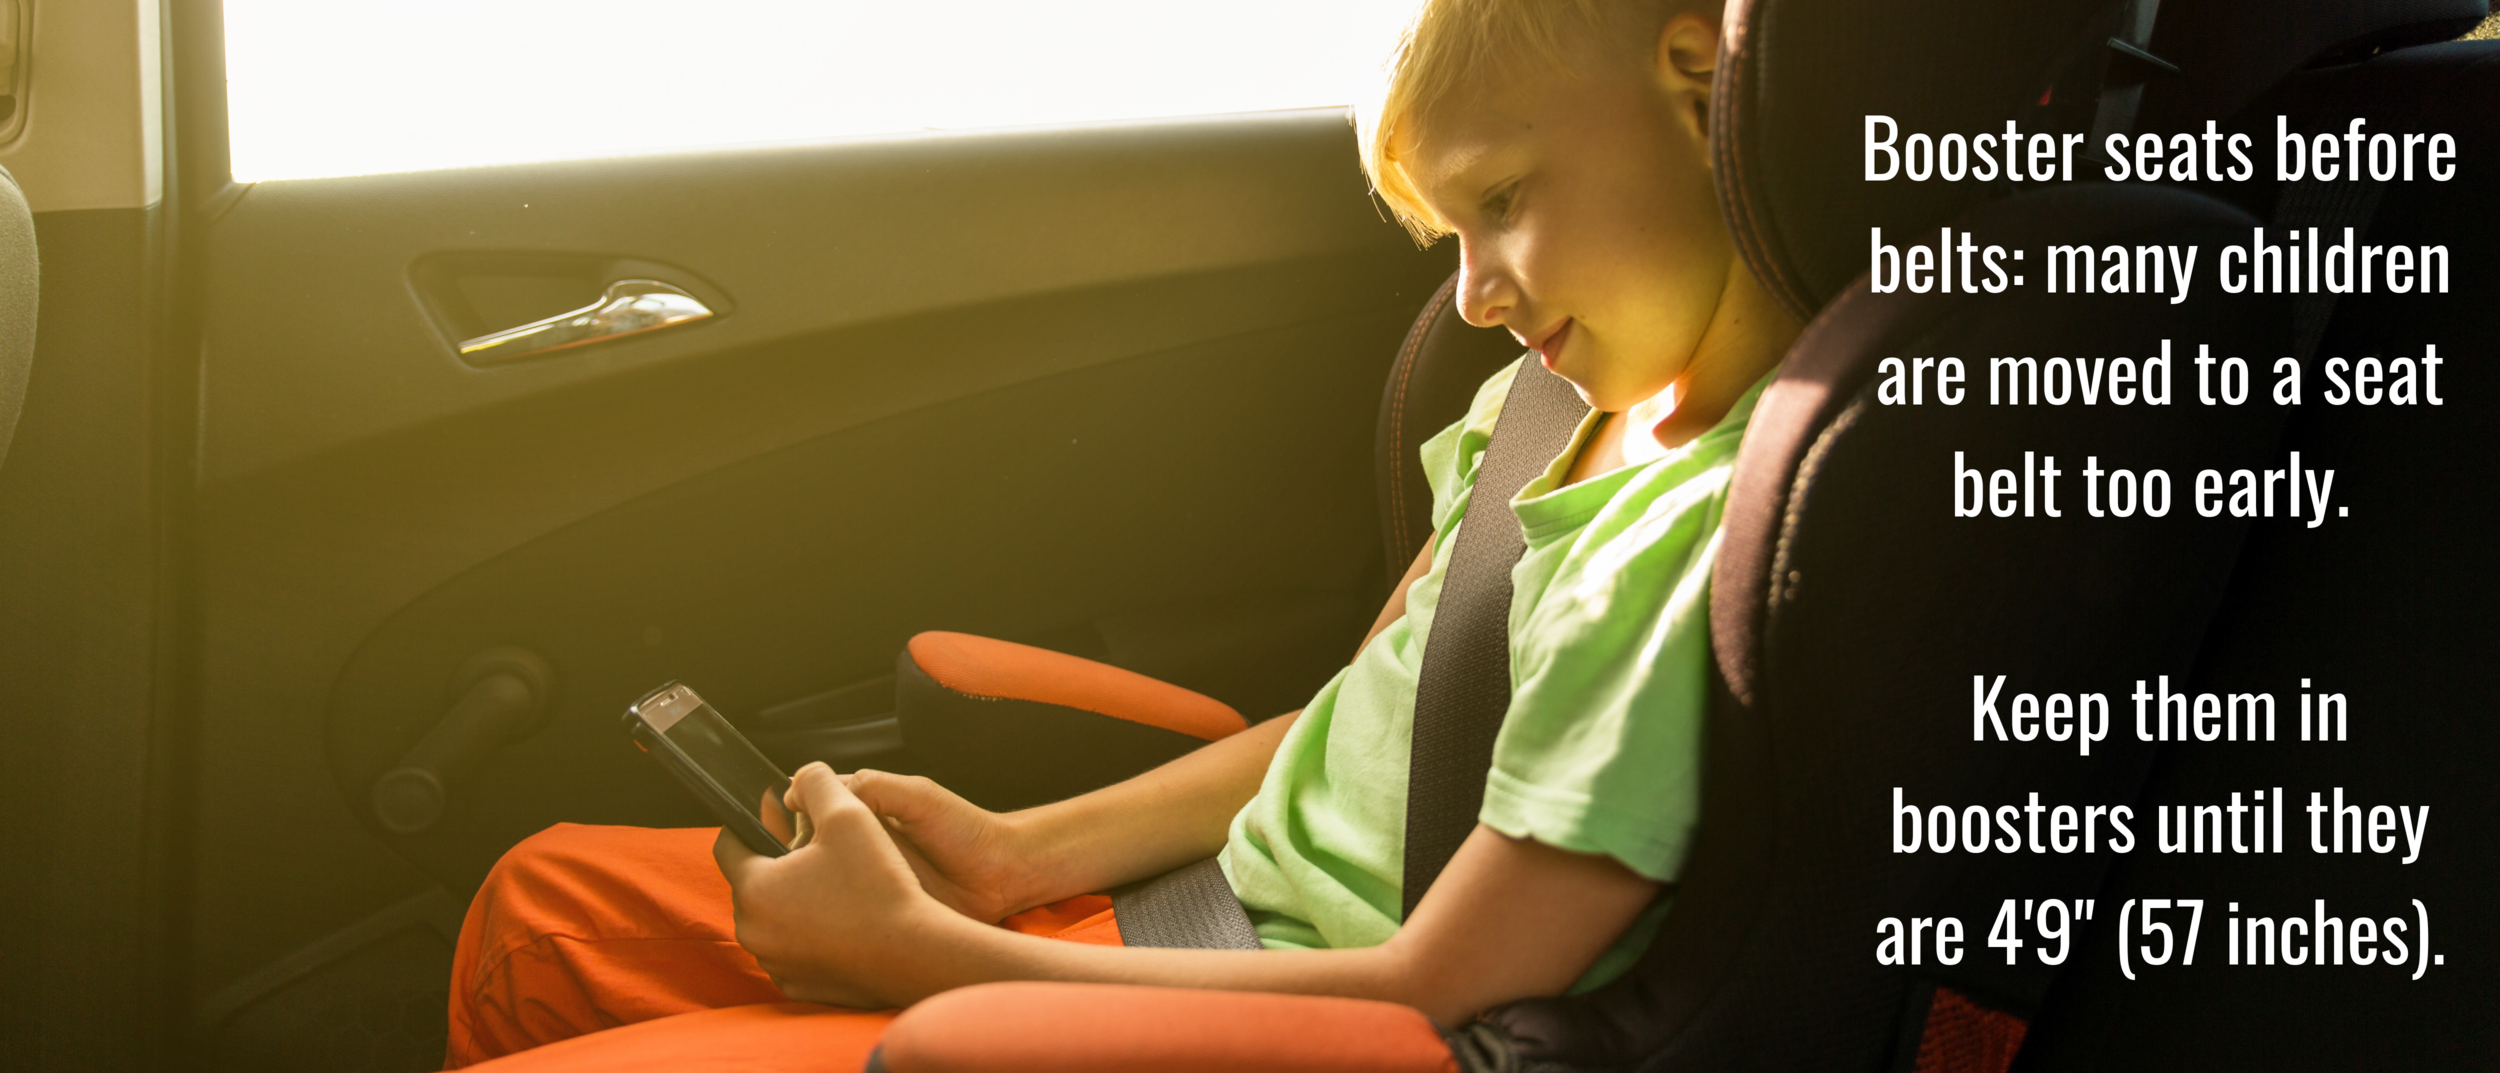 Booster seat header graphic.png